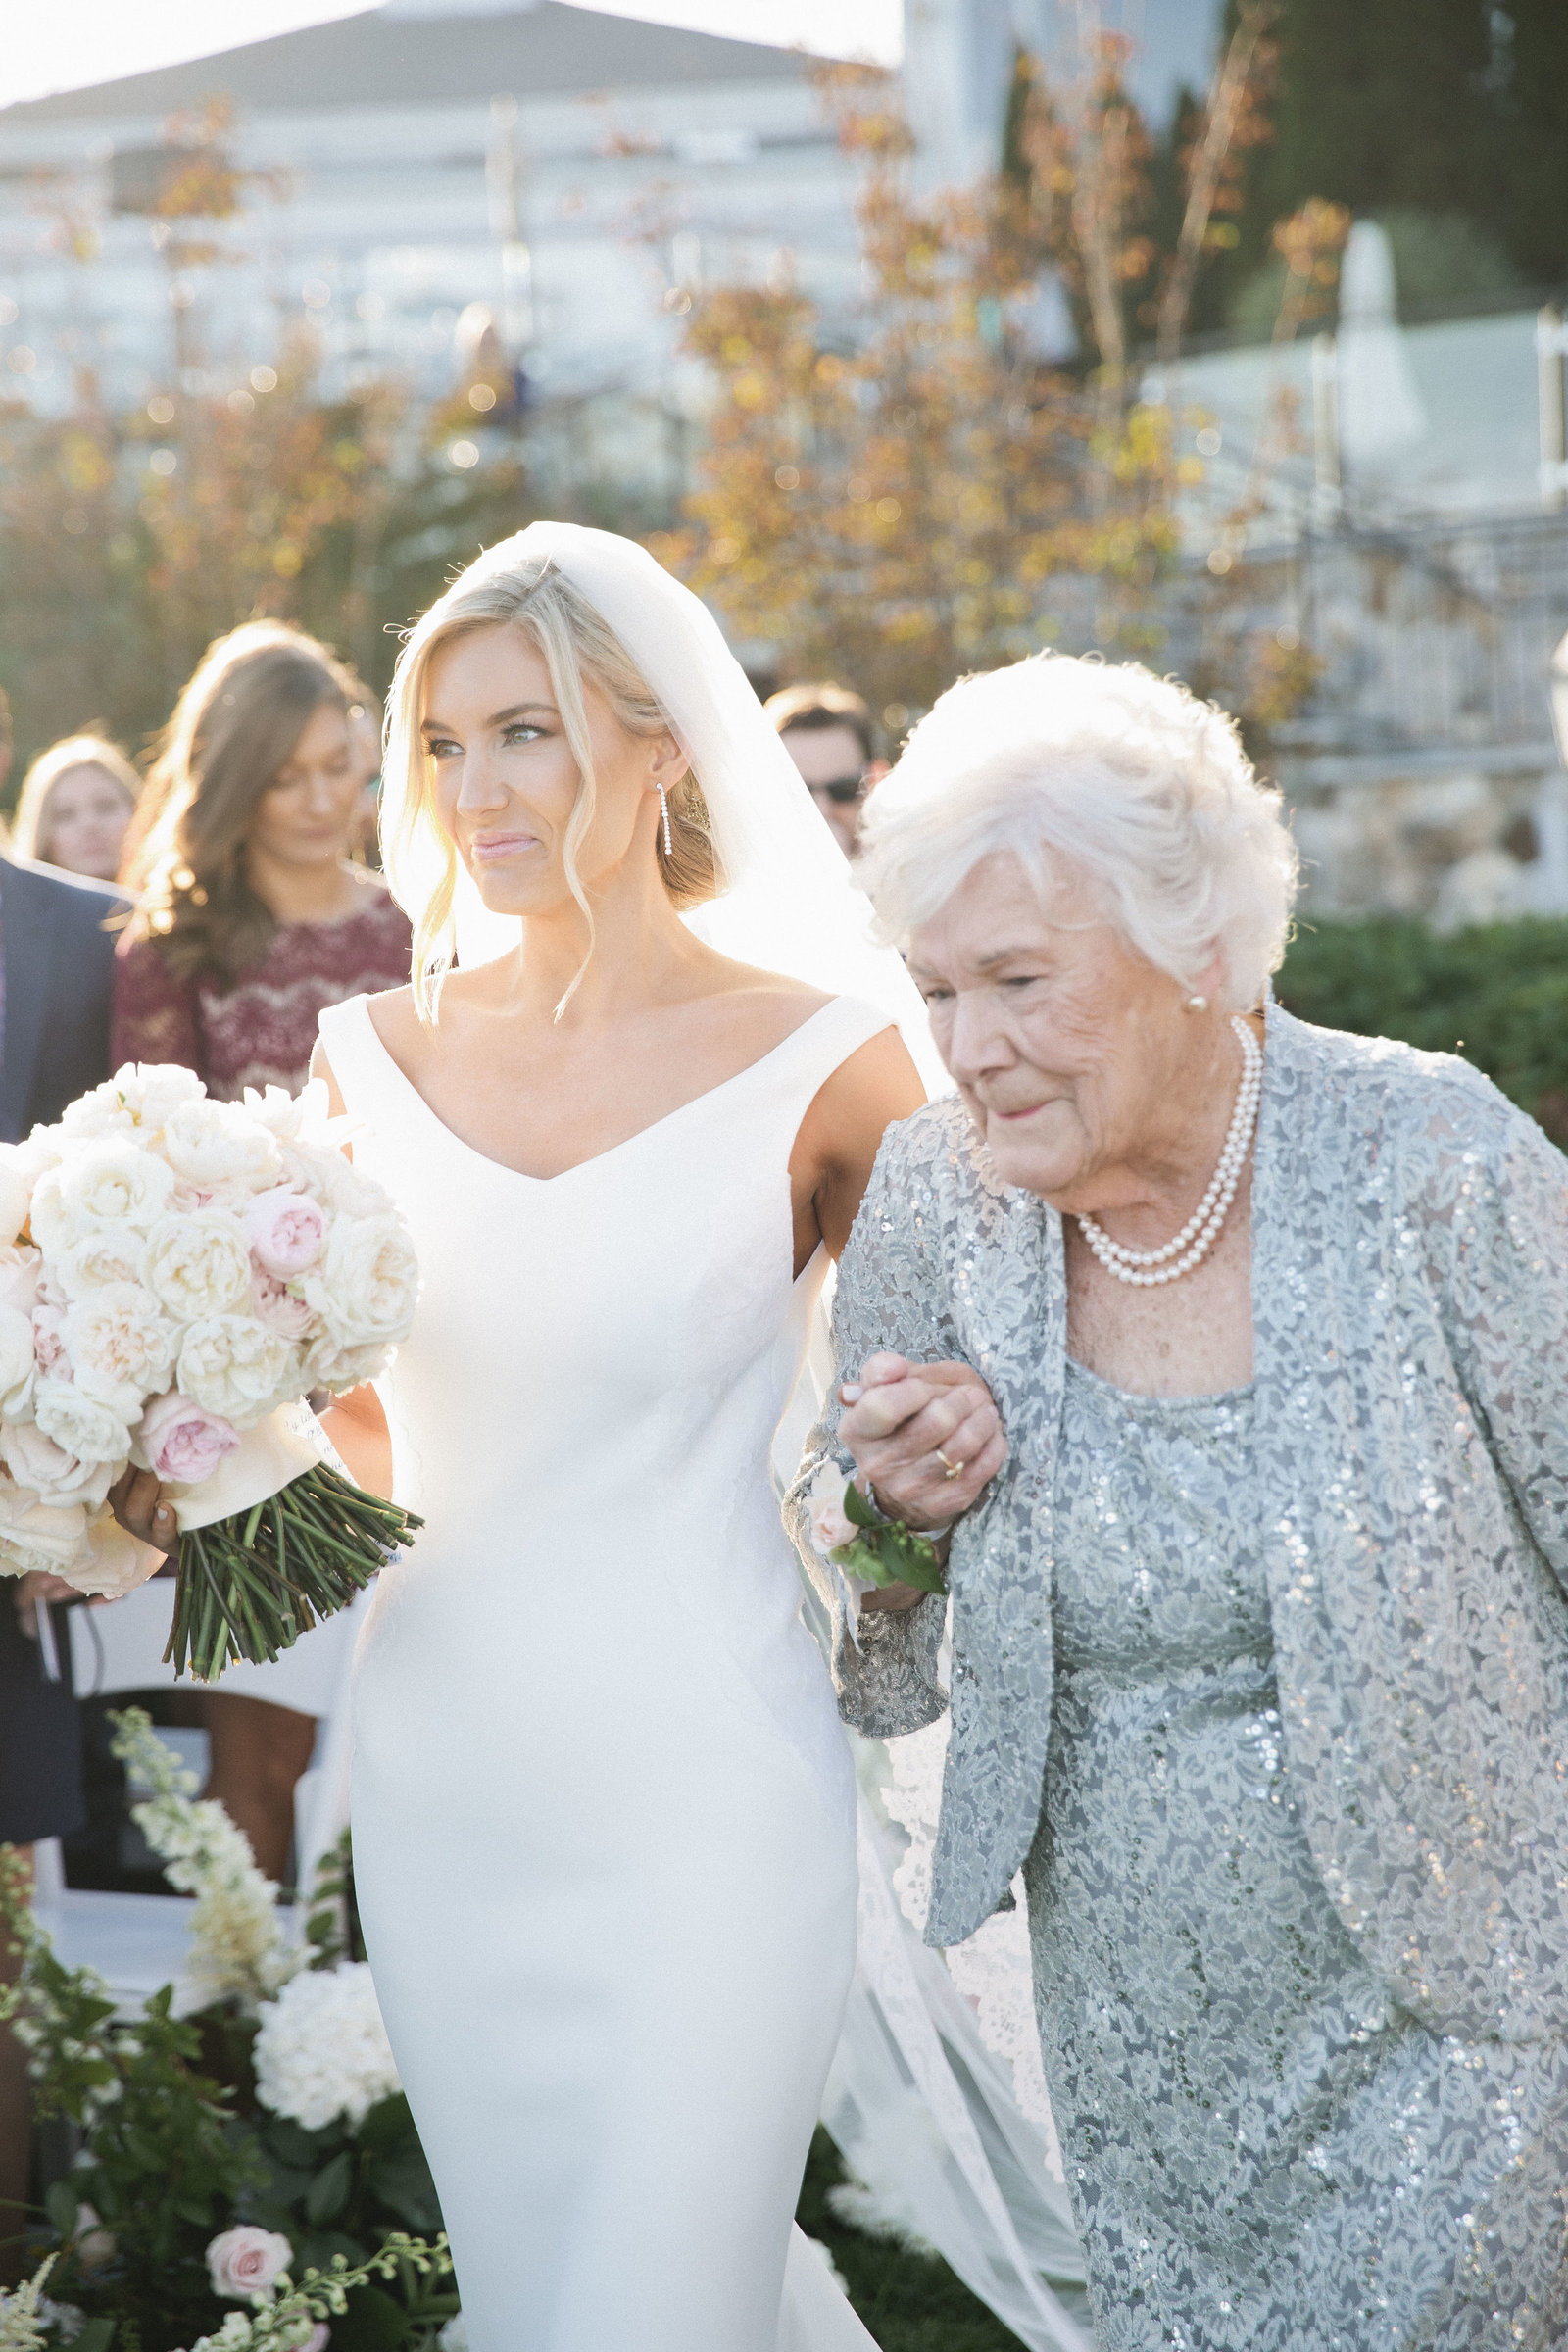 Whitney Bischoff and her Grandmother walking down the aisle together at Wequassett Resort